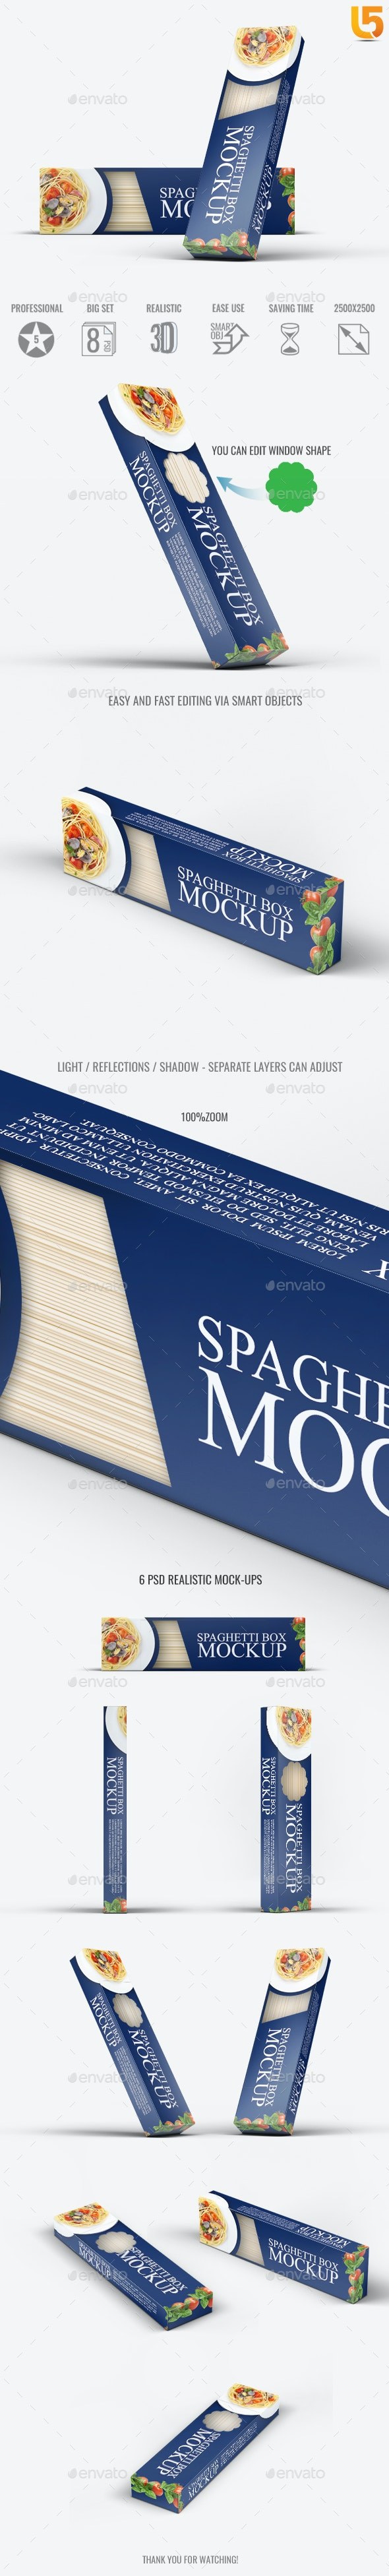 Spaghetti Box Mock-up - Food and Drink Packaging